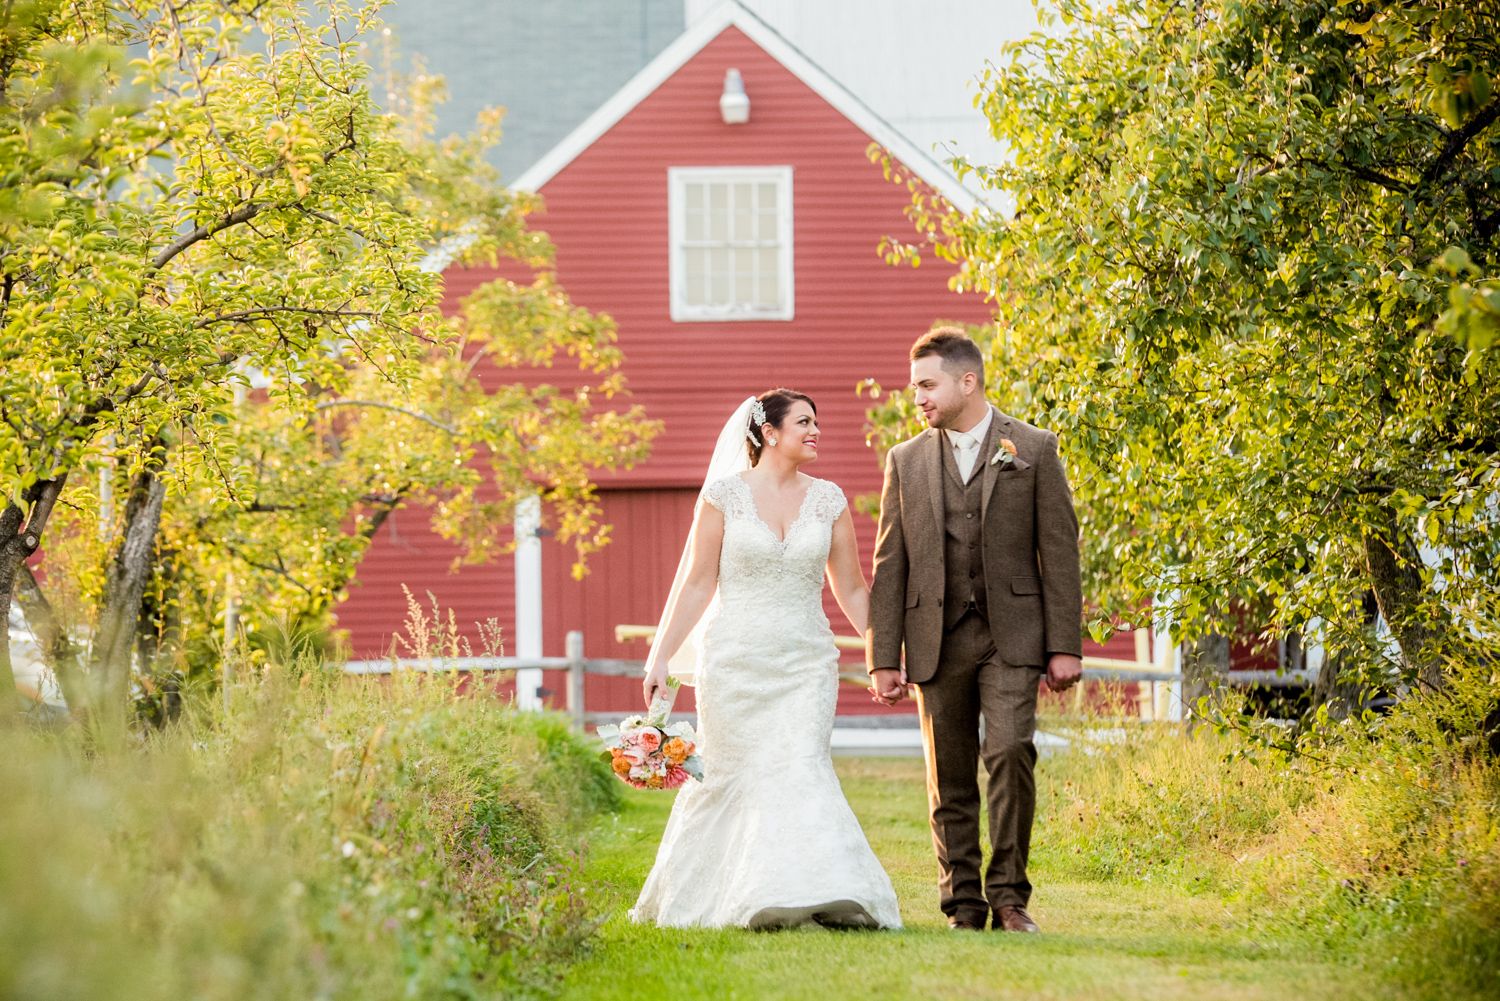 Ashley & JP - Smith Barn Peabody Wedding